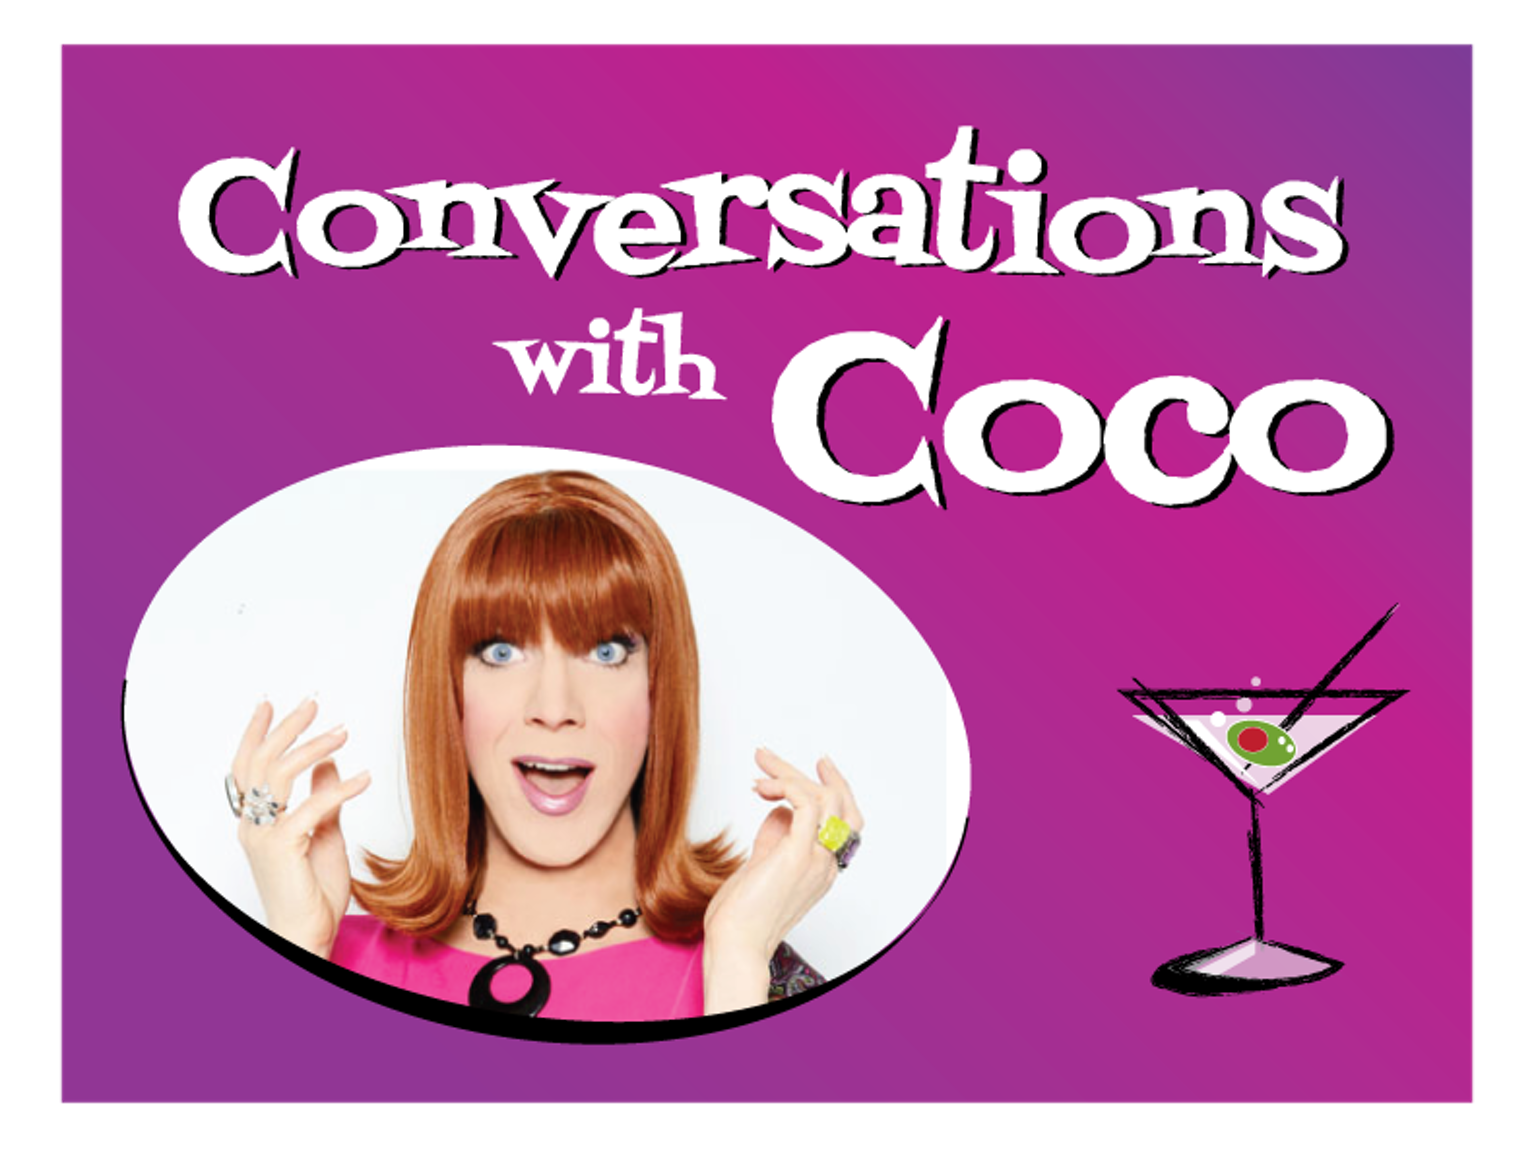 Help drag icon Coco Peru film a pilot of her conversation show with Hollywood stars! Some series proceeds help Los Angeles LGBT Center.